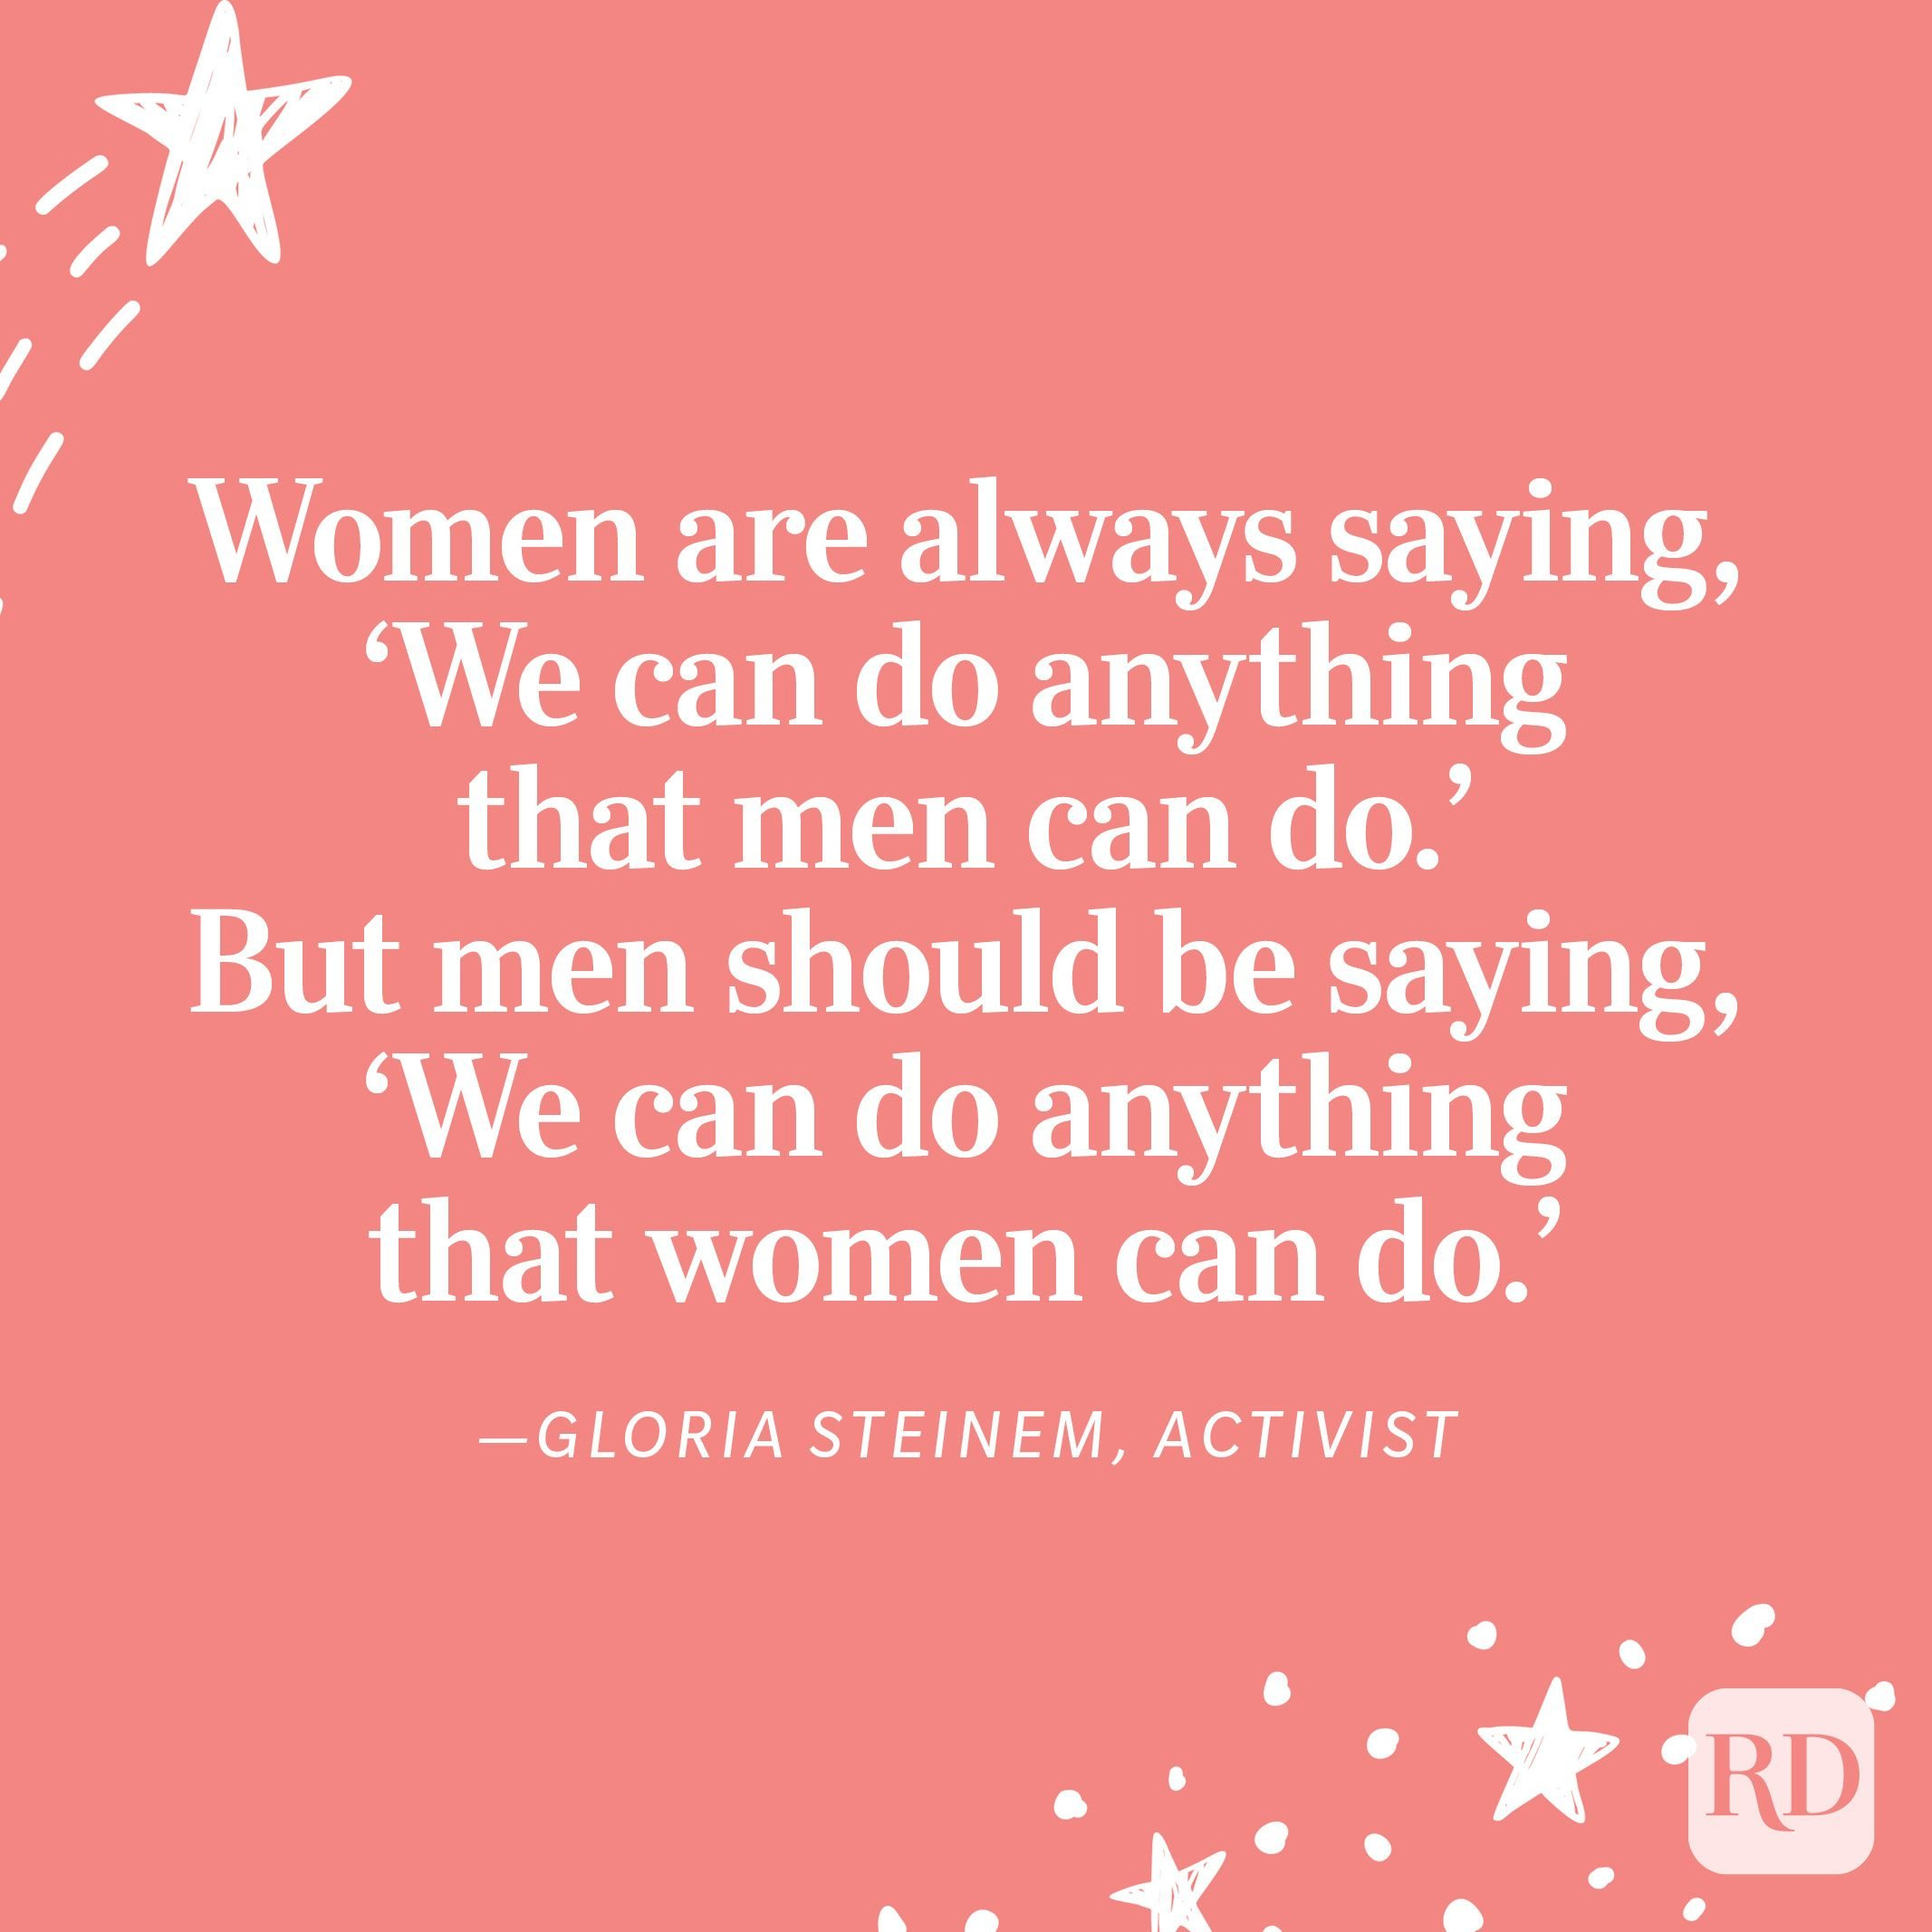 """""""Women are always saying, 'We can do anything that men can do.' But men should be saying, 'We can do anything that women can do.'"""" —Gloria Steinem, activist"""